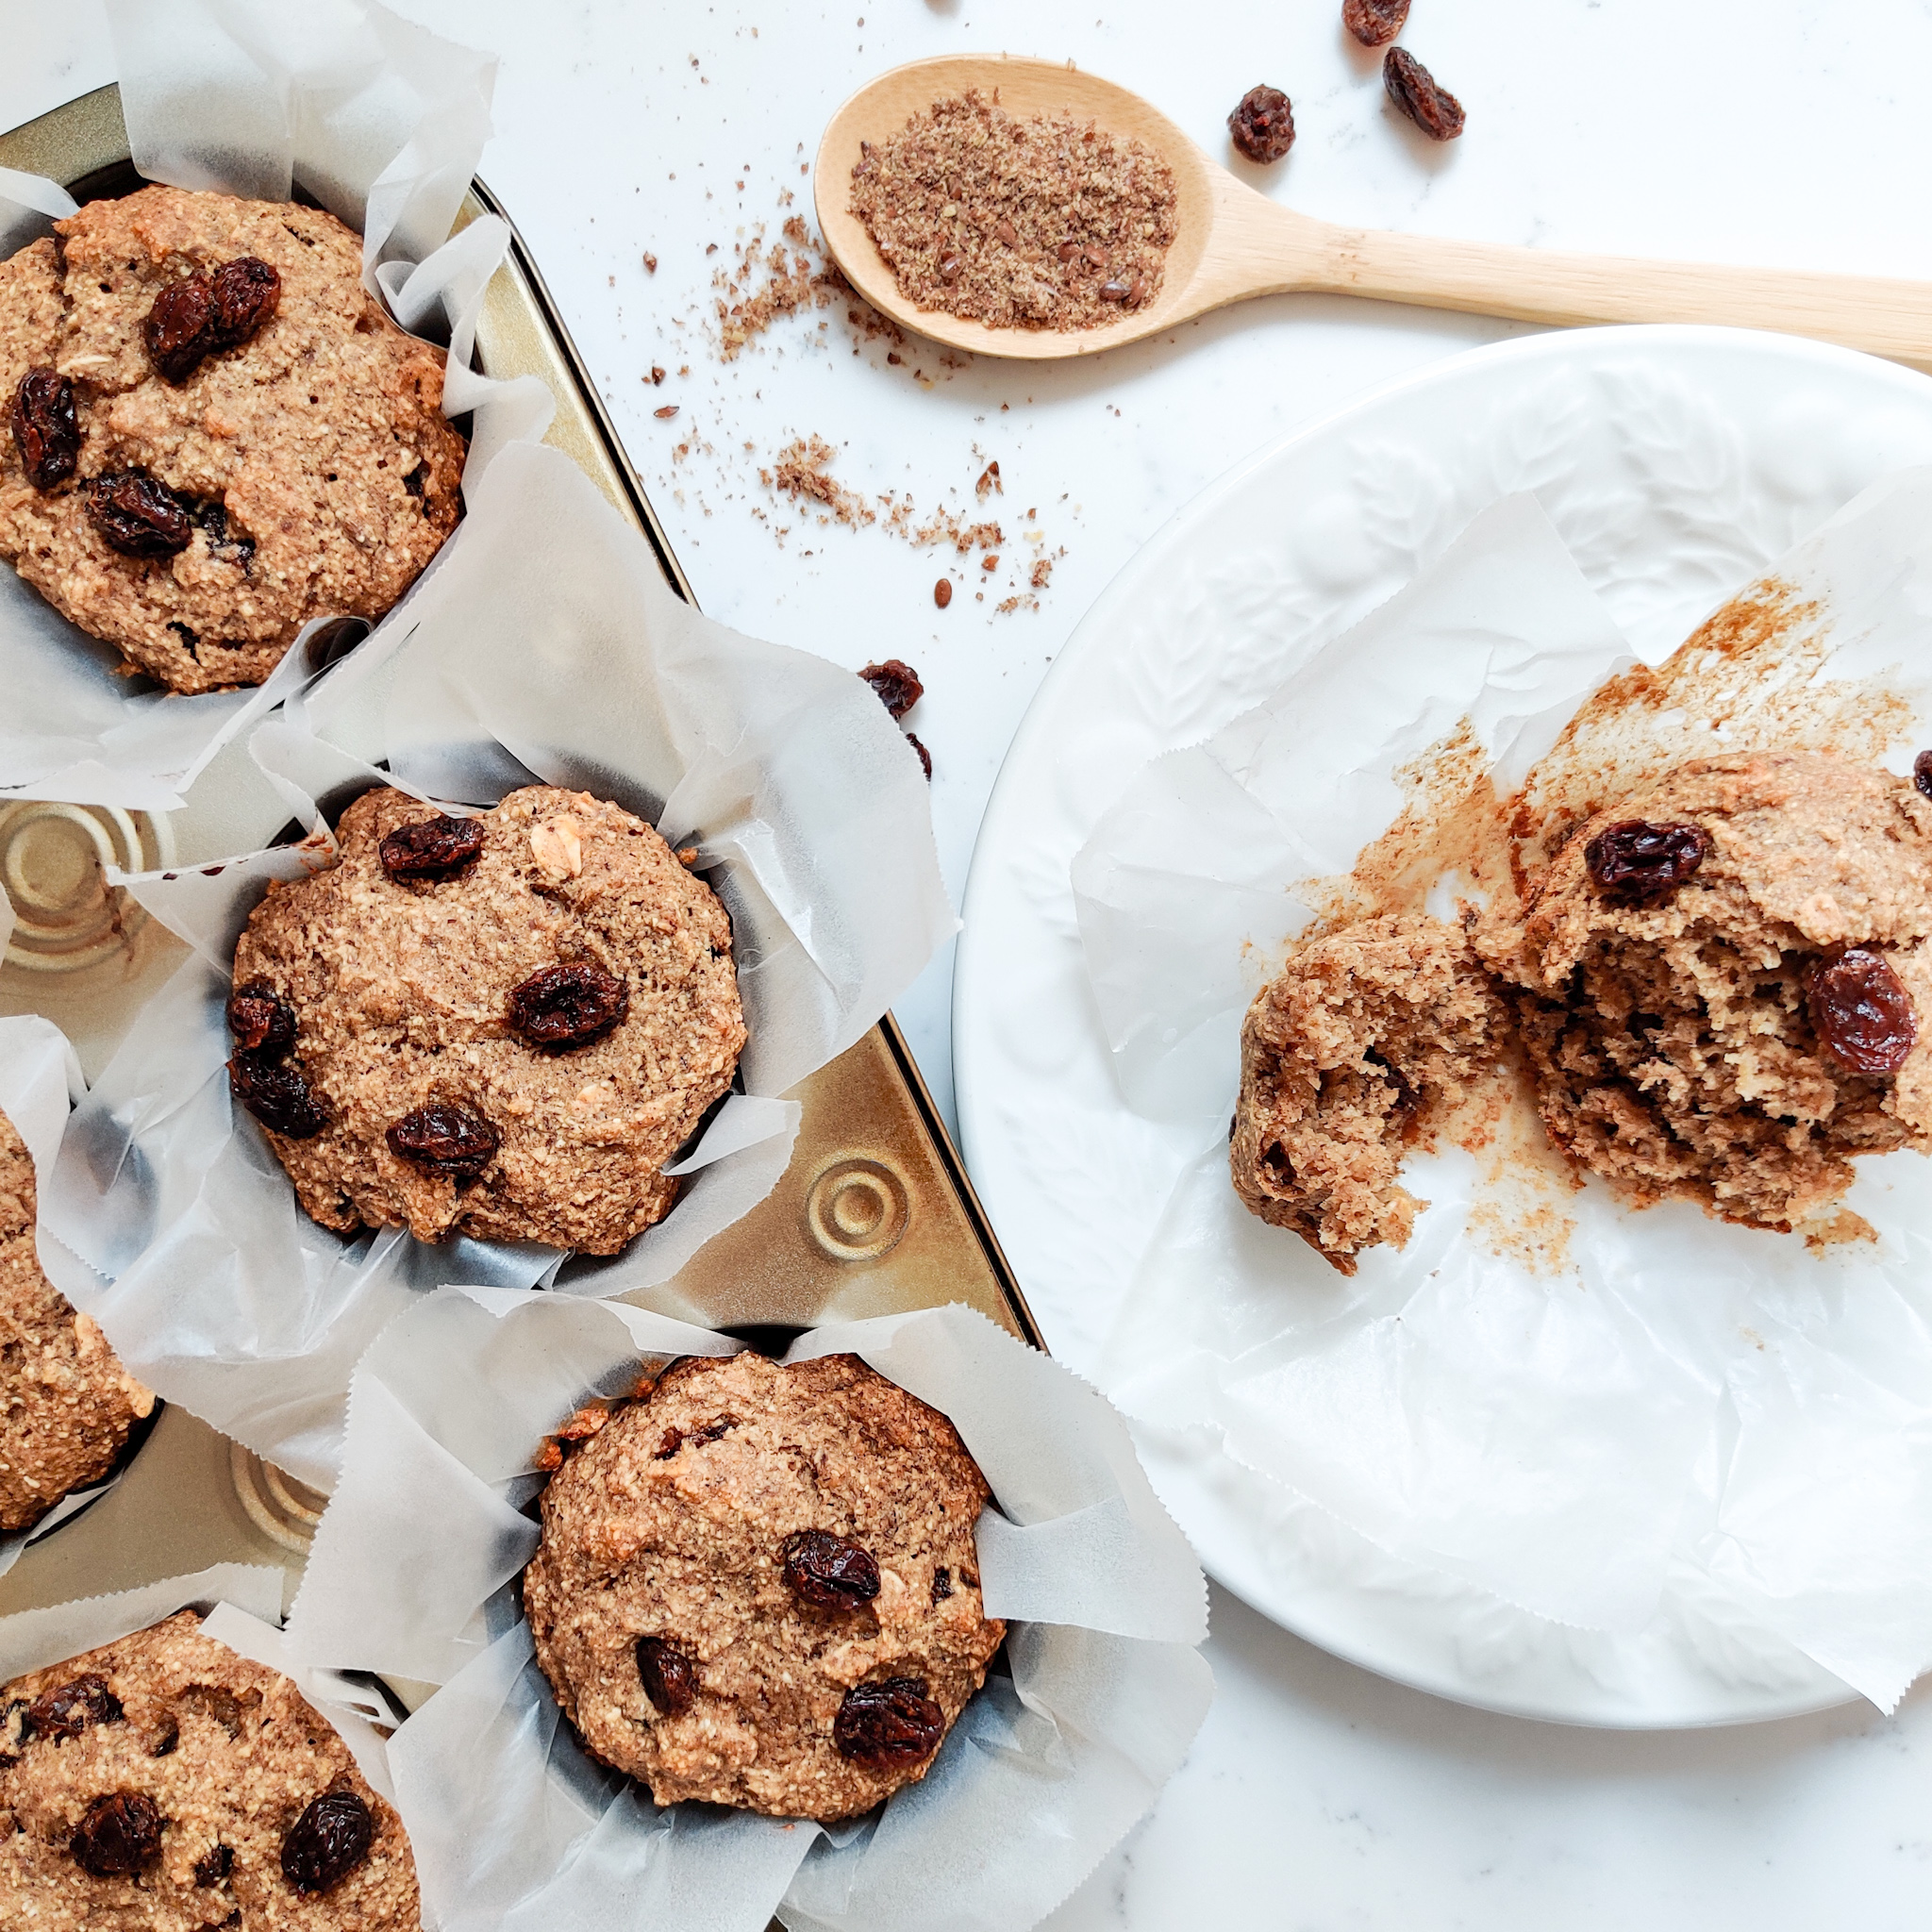 Cinnamon Raisin Oat Muffins